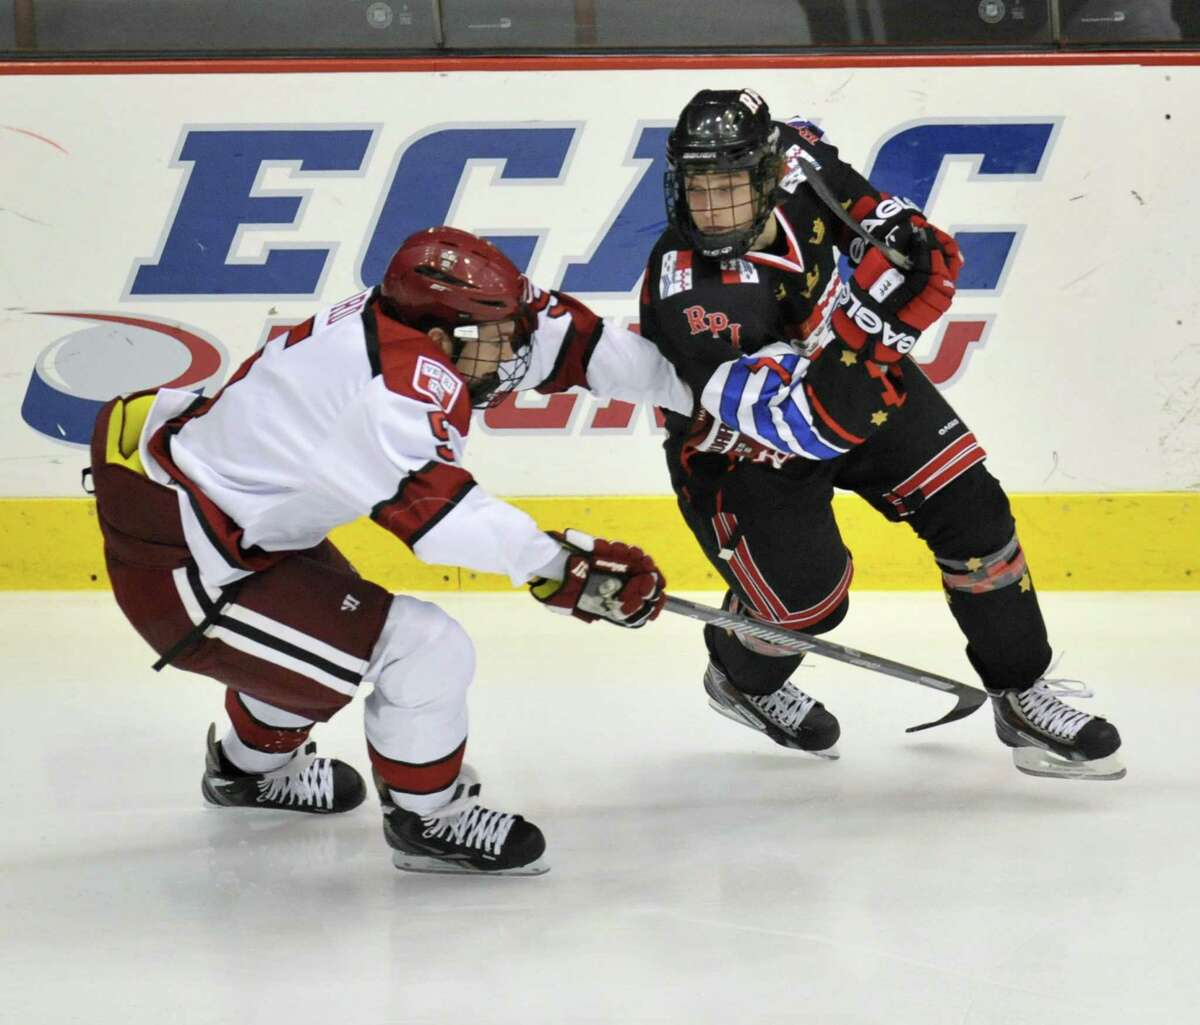 Harvard University's Dan Ford (5) and Rensselaer Polytechnic InstituteZach Schroeder (7) against chase a puck during the first period of a ECAC college hockey game in Troy N.Y., Tuesday, Oct. 29, 2013. (Hans Pennink / Special to the Times Union)